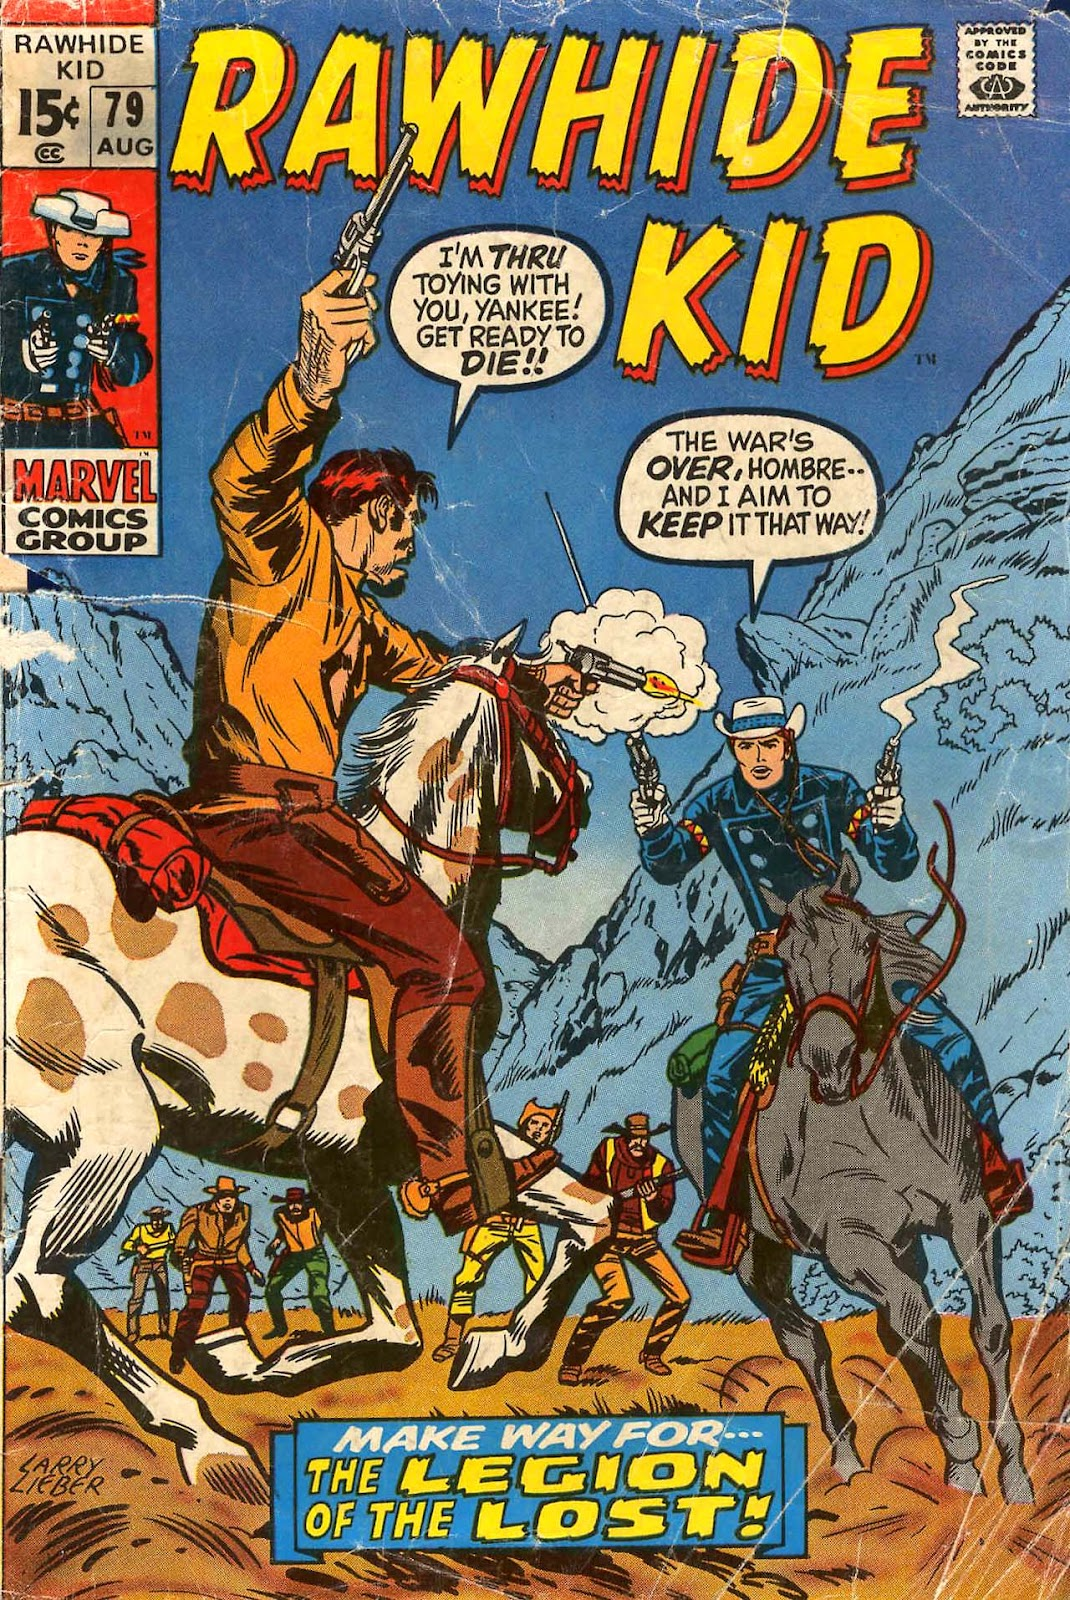 The Rawhide Kid (1955) issue 79 - Page 1